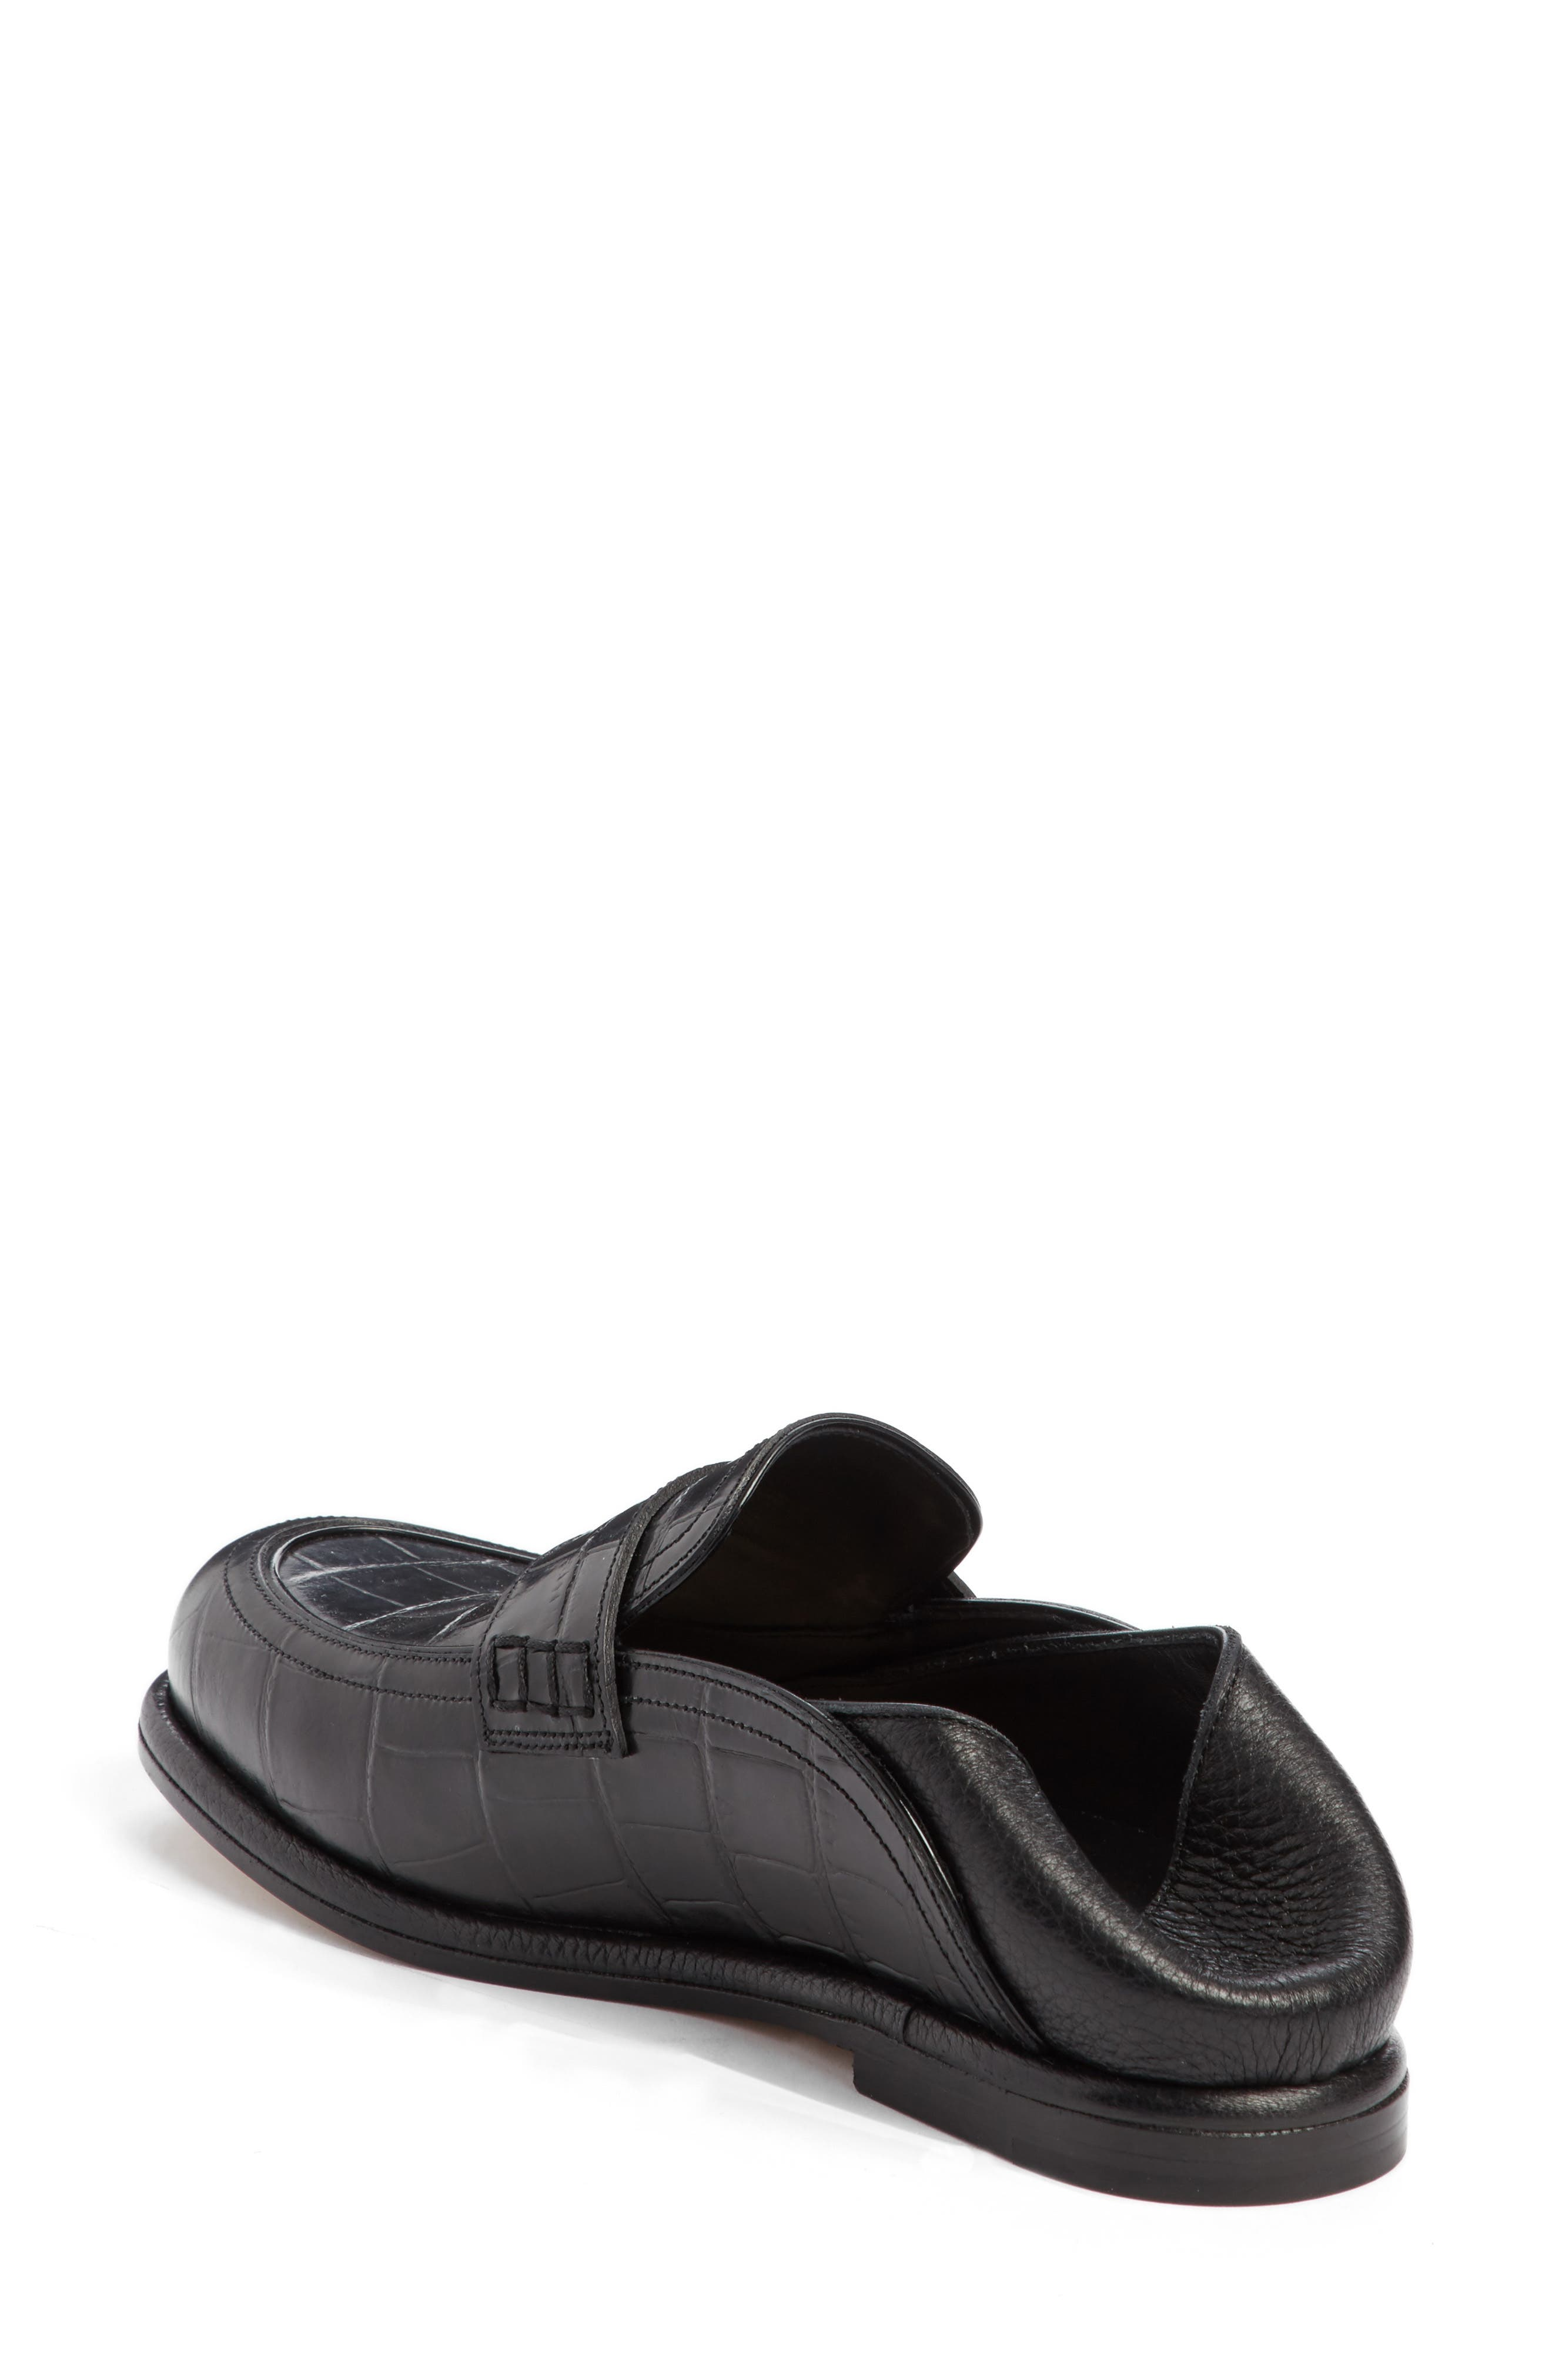 Croc Embossed Convertible Loafer,                             Alternate thumbnail 2, color,                             012